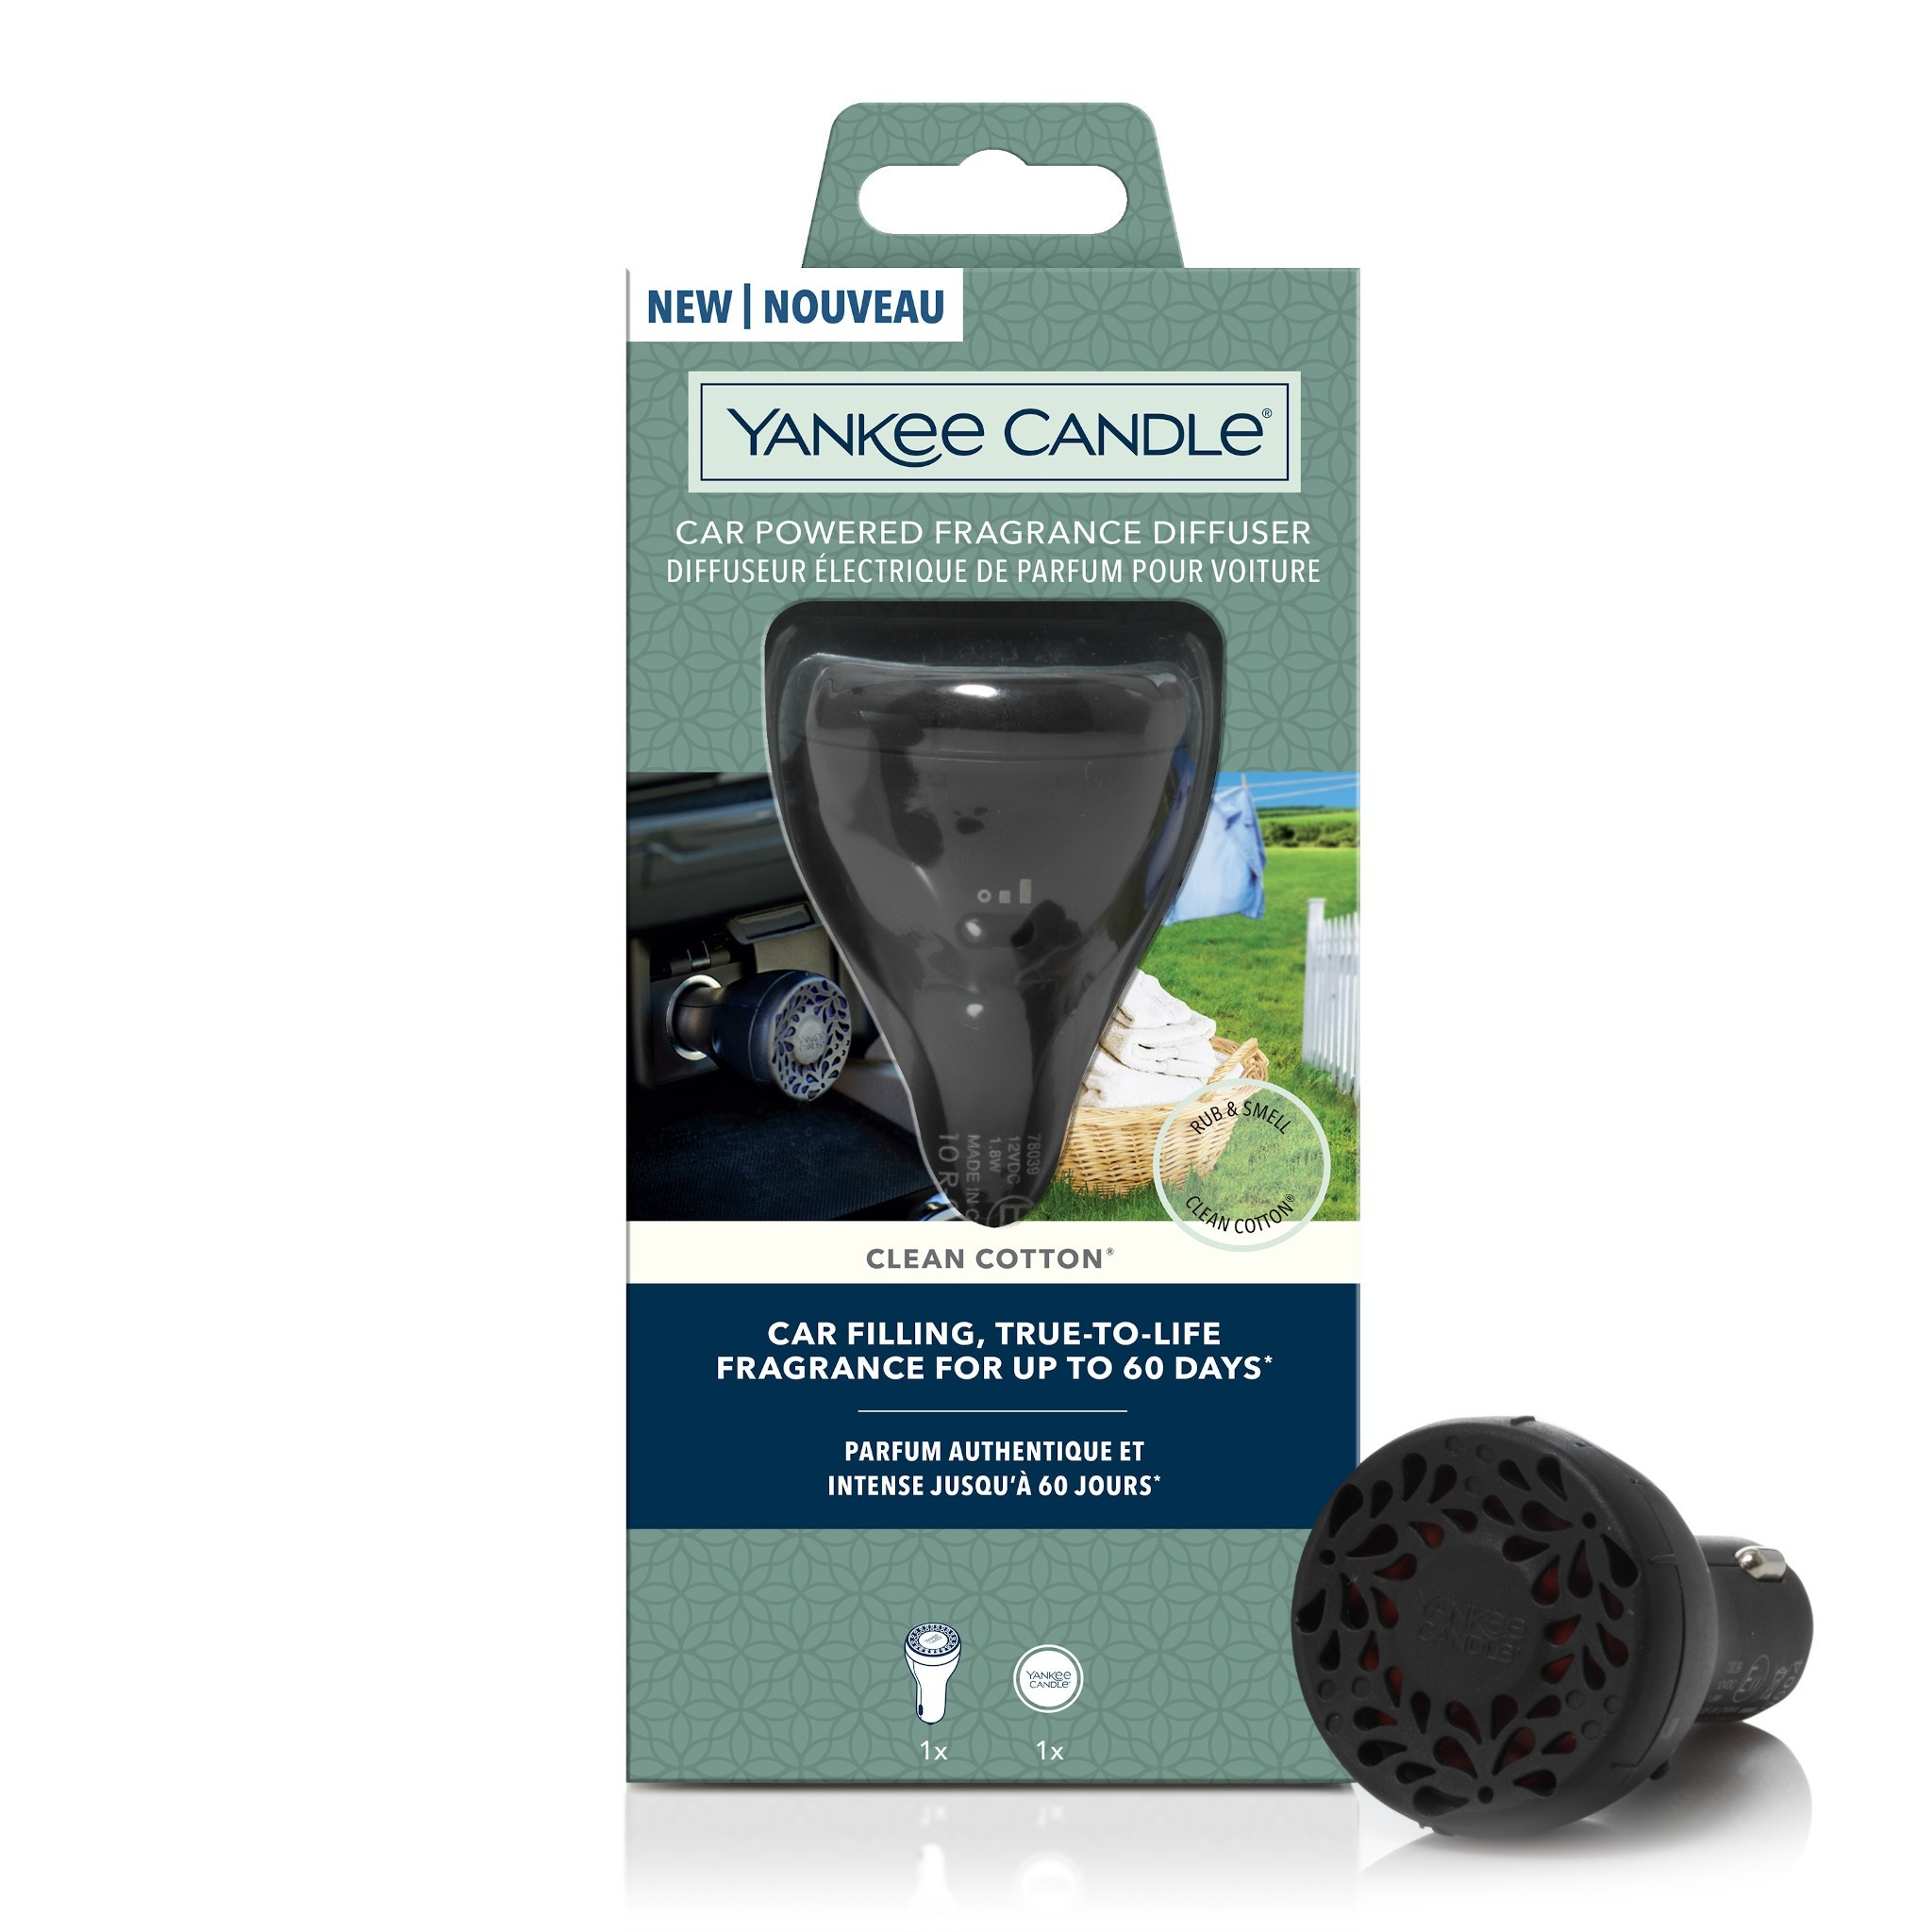 Yankee Candle - Clean Cotton Starter Kit Car Powered Fragrance